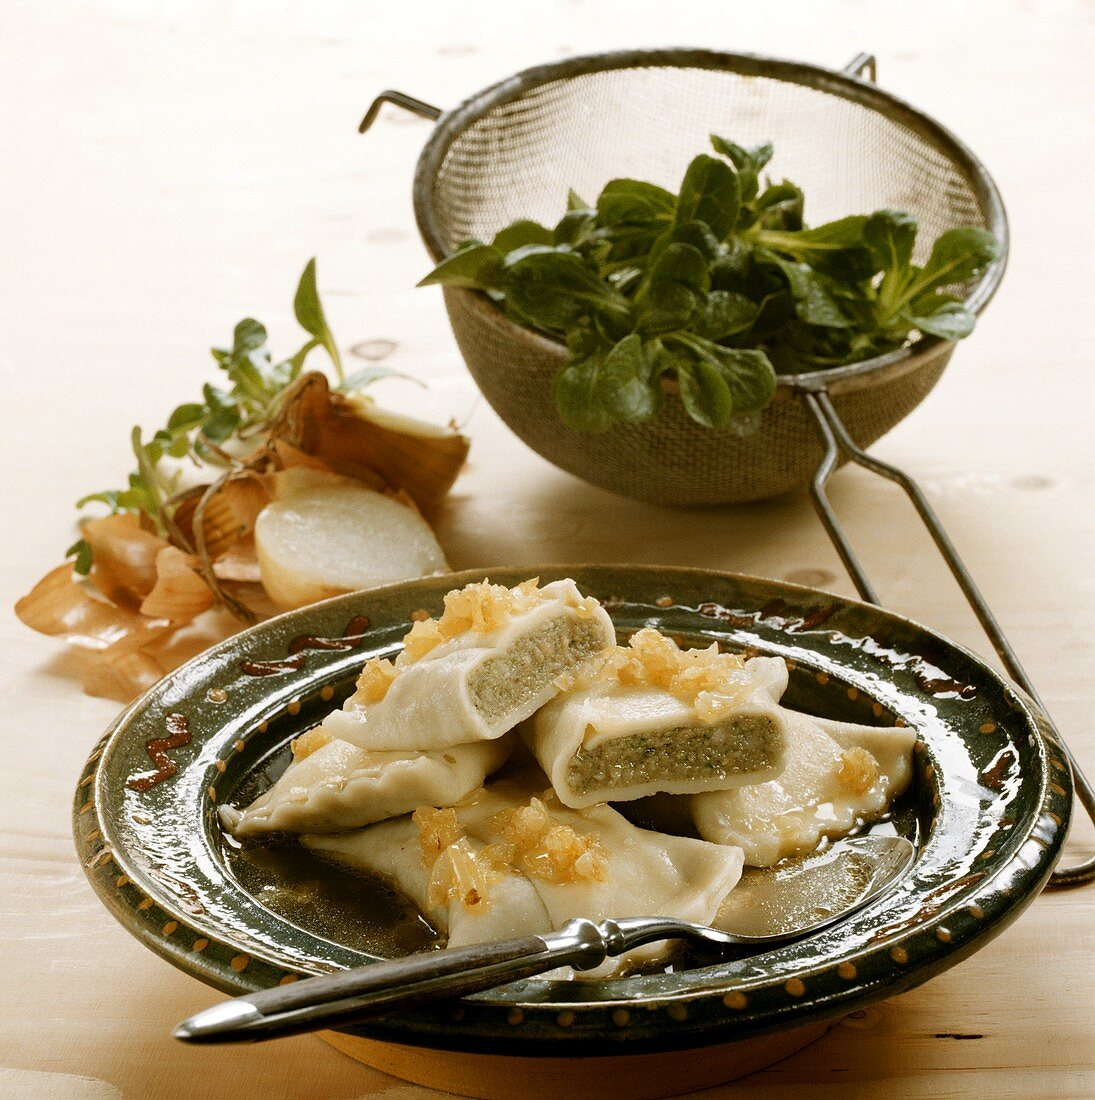 Classic Maultaschen (pasta envelopes) in broth; corn salad